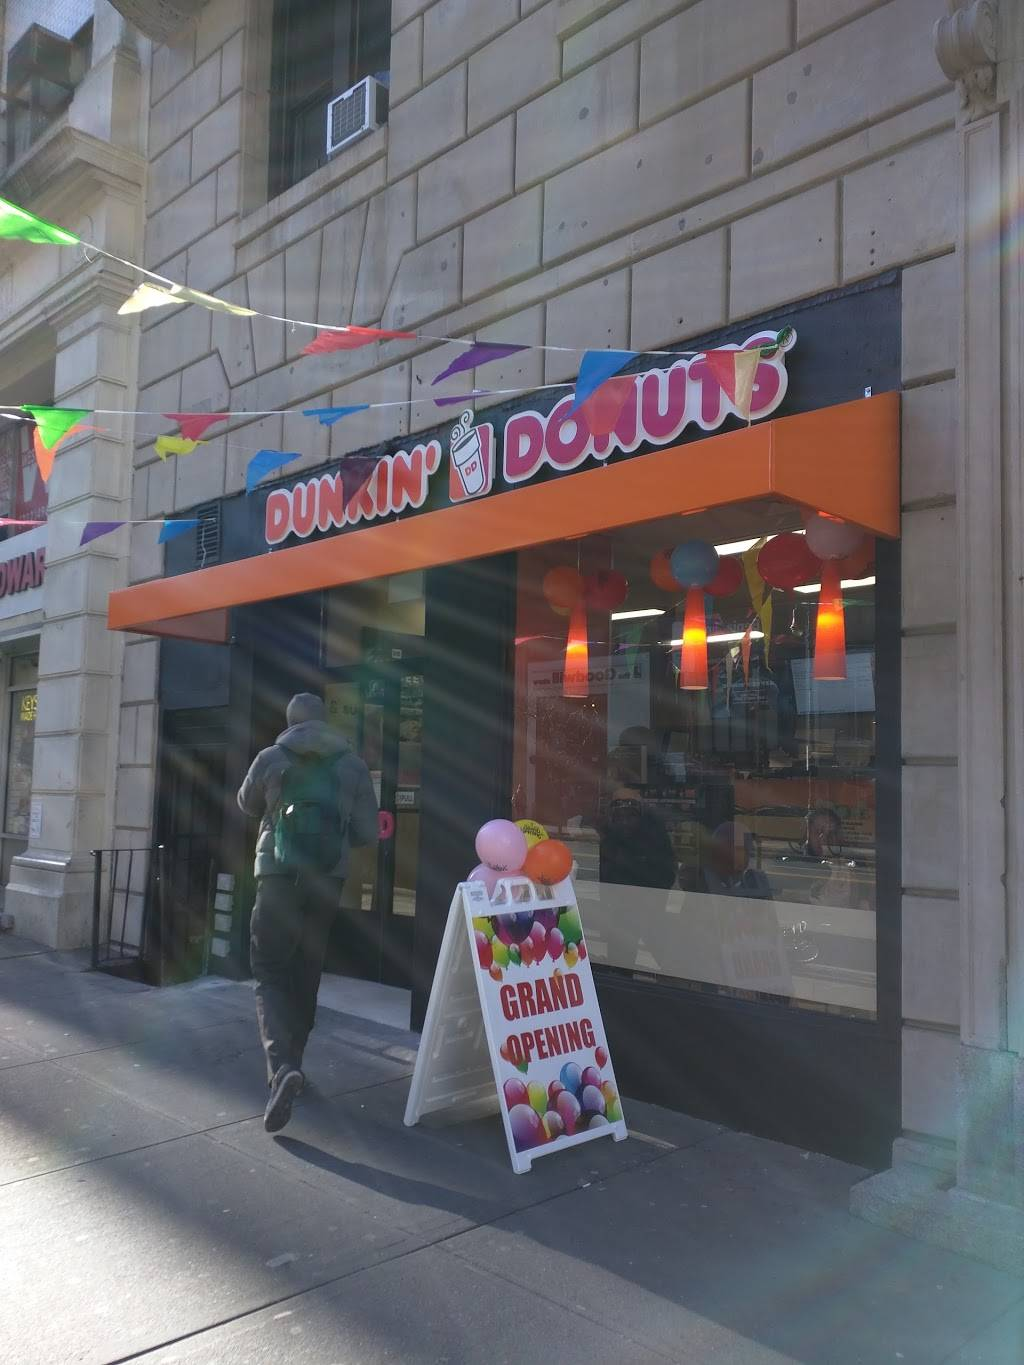 Dunkin Donuts | cafe | 166 W 72nd St, New York, NY 10023, USA | 6467679048 OR +1 646-767-9048